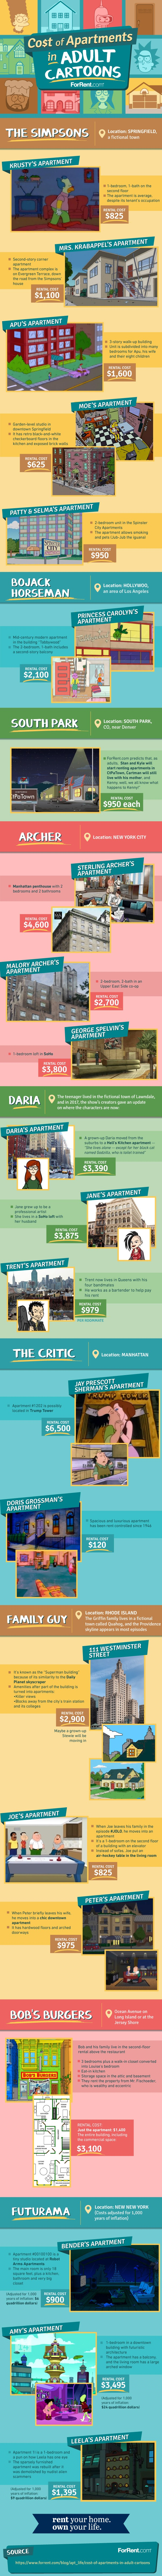 Cost of Apartments in Adult Cartoons